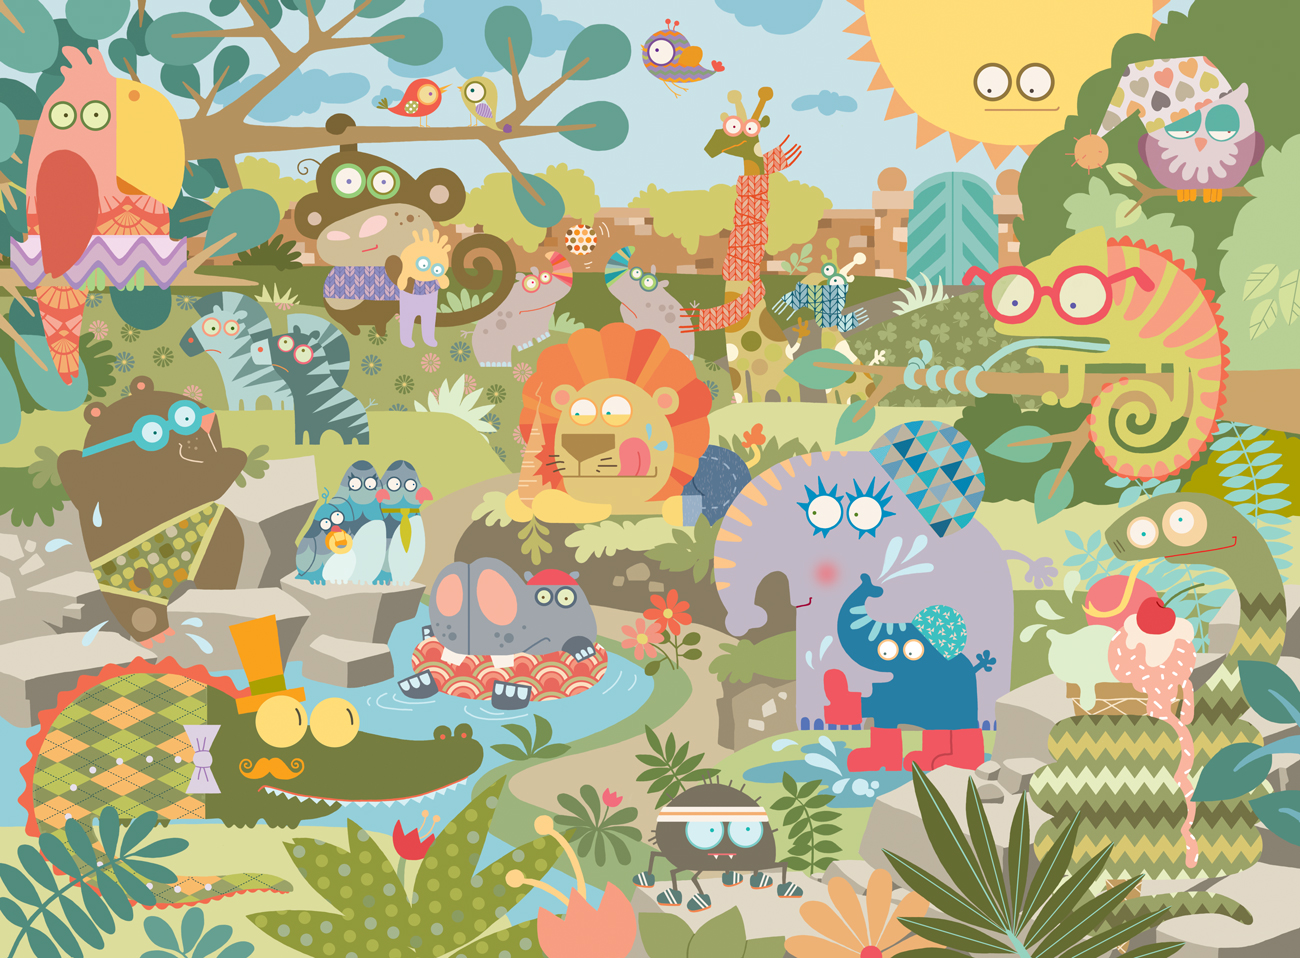 Zoo Puzzle Studio Lindalu Illustrations That Convey